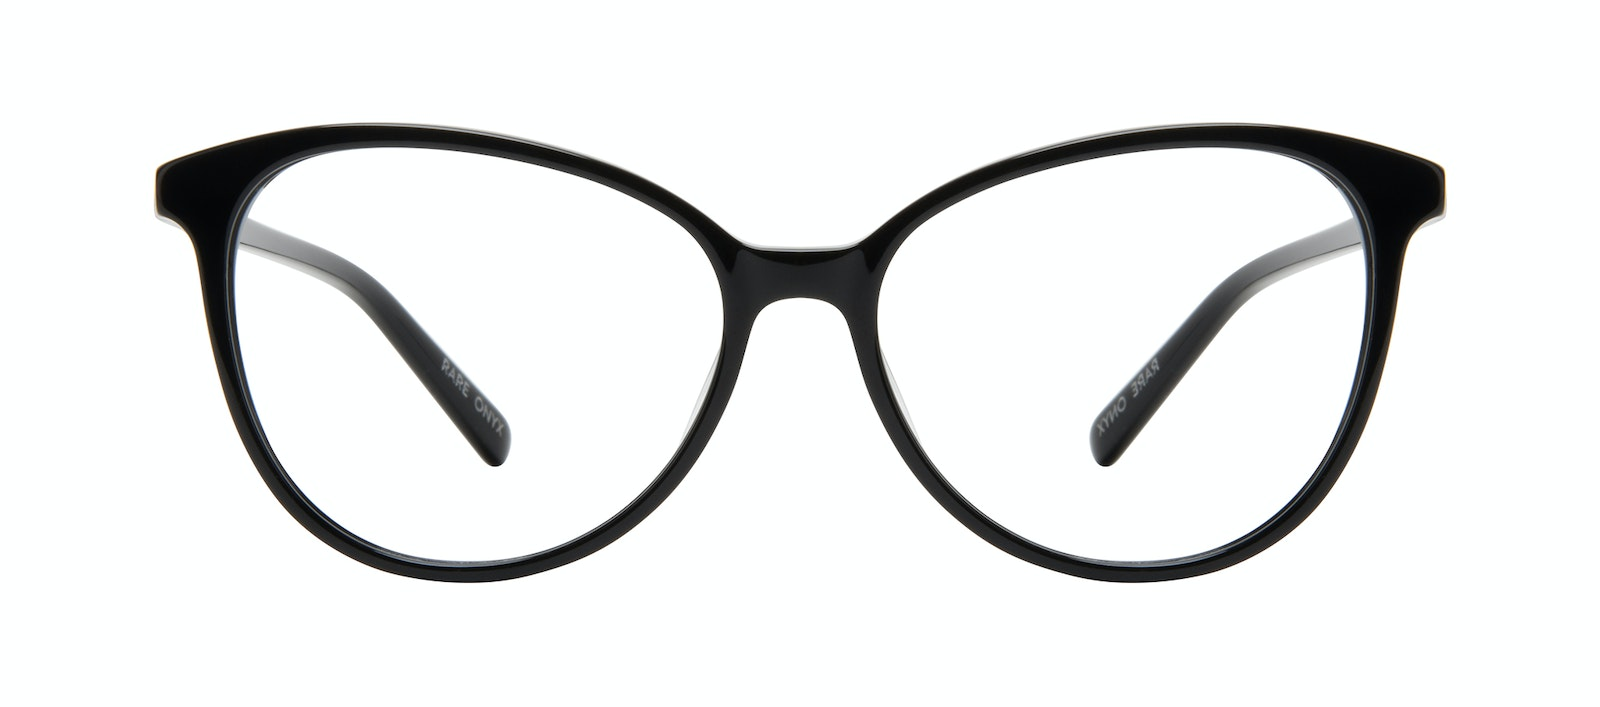 Affordable Fashion Glasses Cat Eye Eyeglasses Women Rare Onyx Front